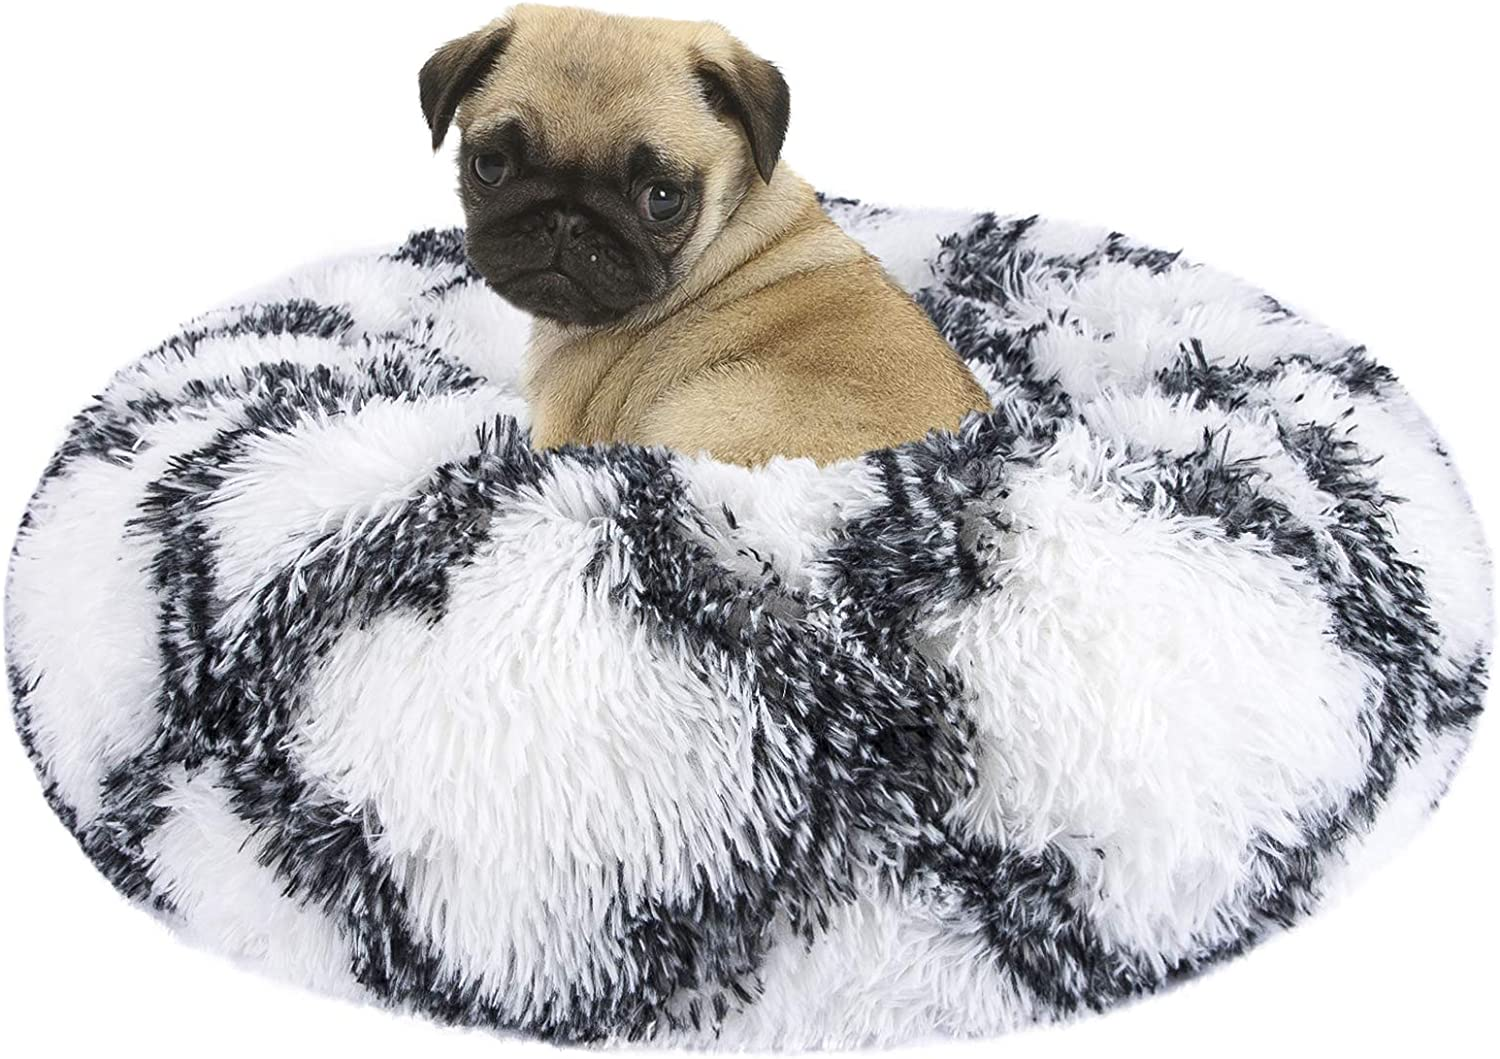 INVENHO Orthopedic Dog Bed Cat Bed for Small Medium Dogs Pet Bed Donut Cuddler Round Soft Calming Bed, Self Warming and Washable Sleeping Bed (16''/20''/23''/30'')